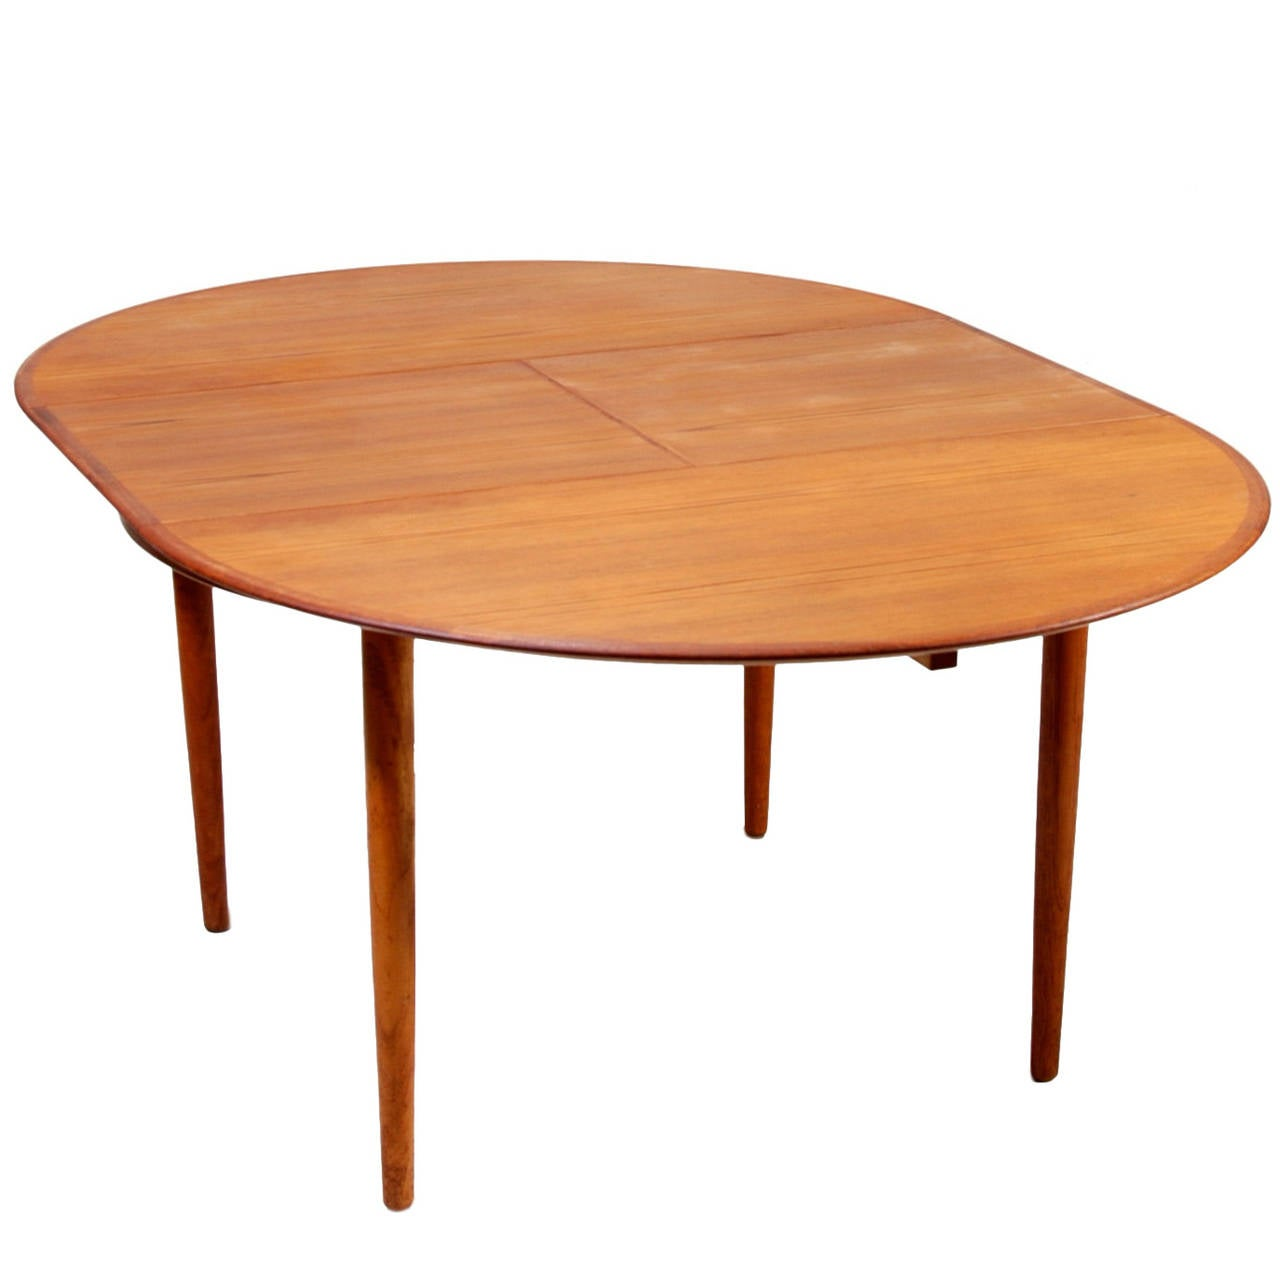 Dining room tables round modern home decor for Modern round dining room tables